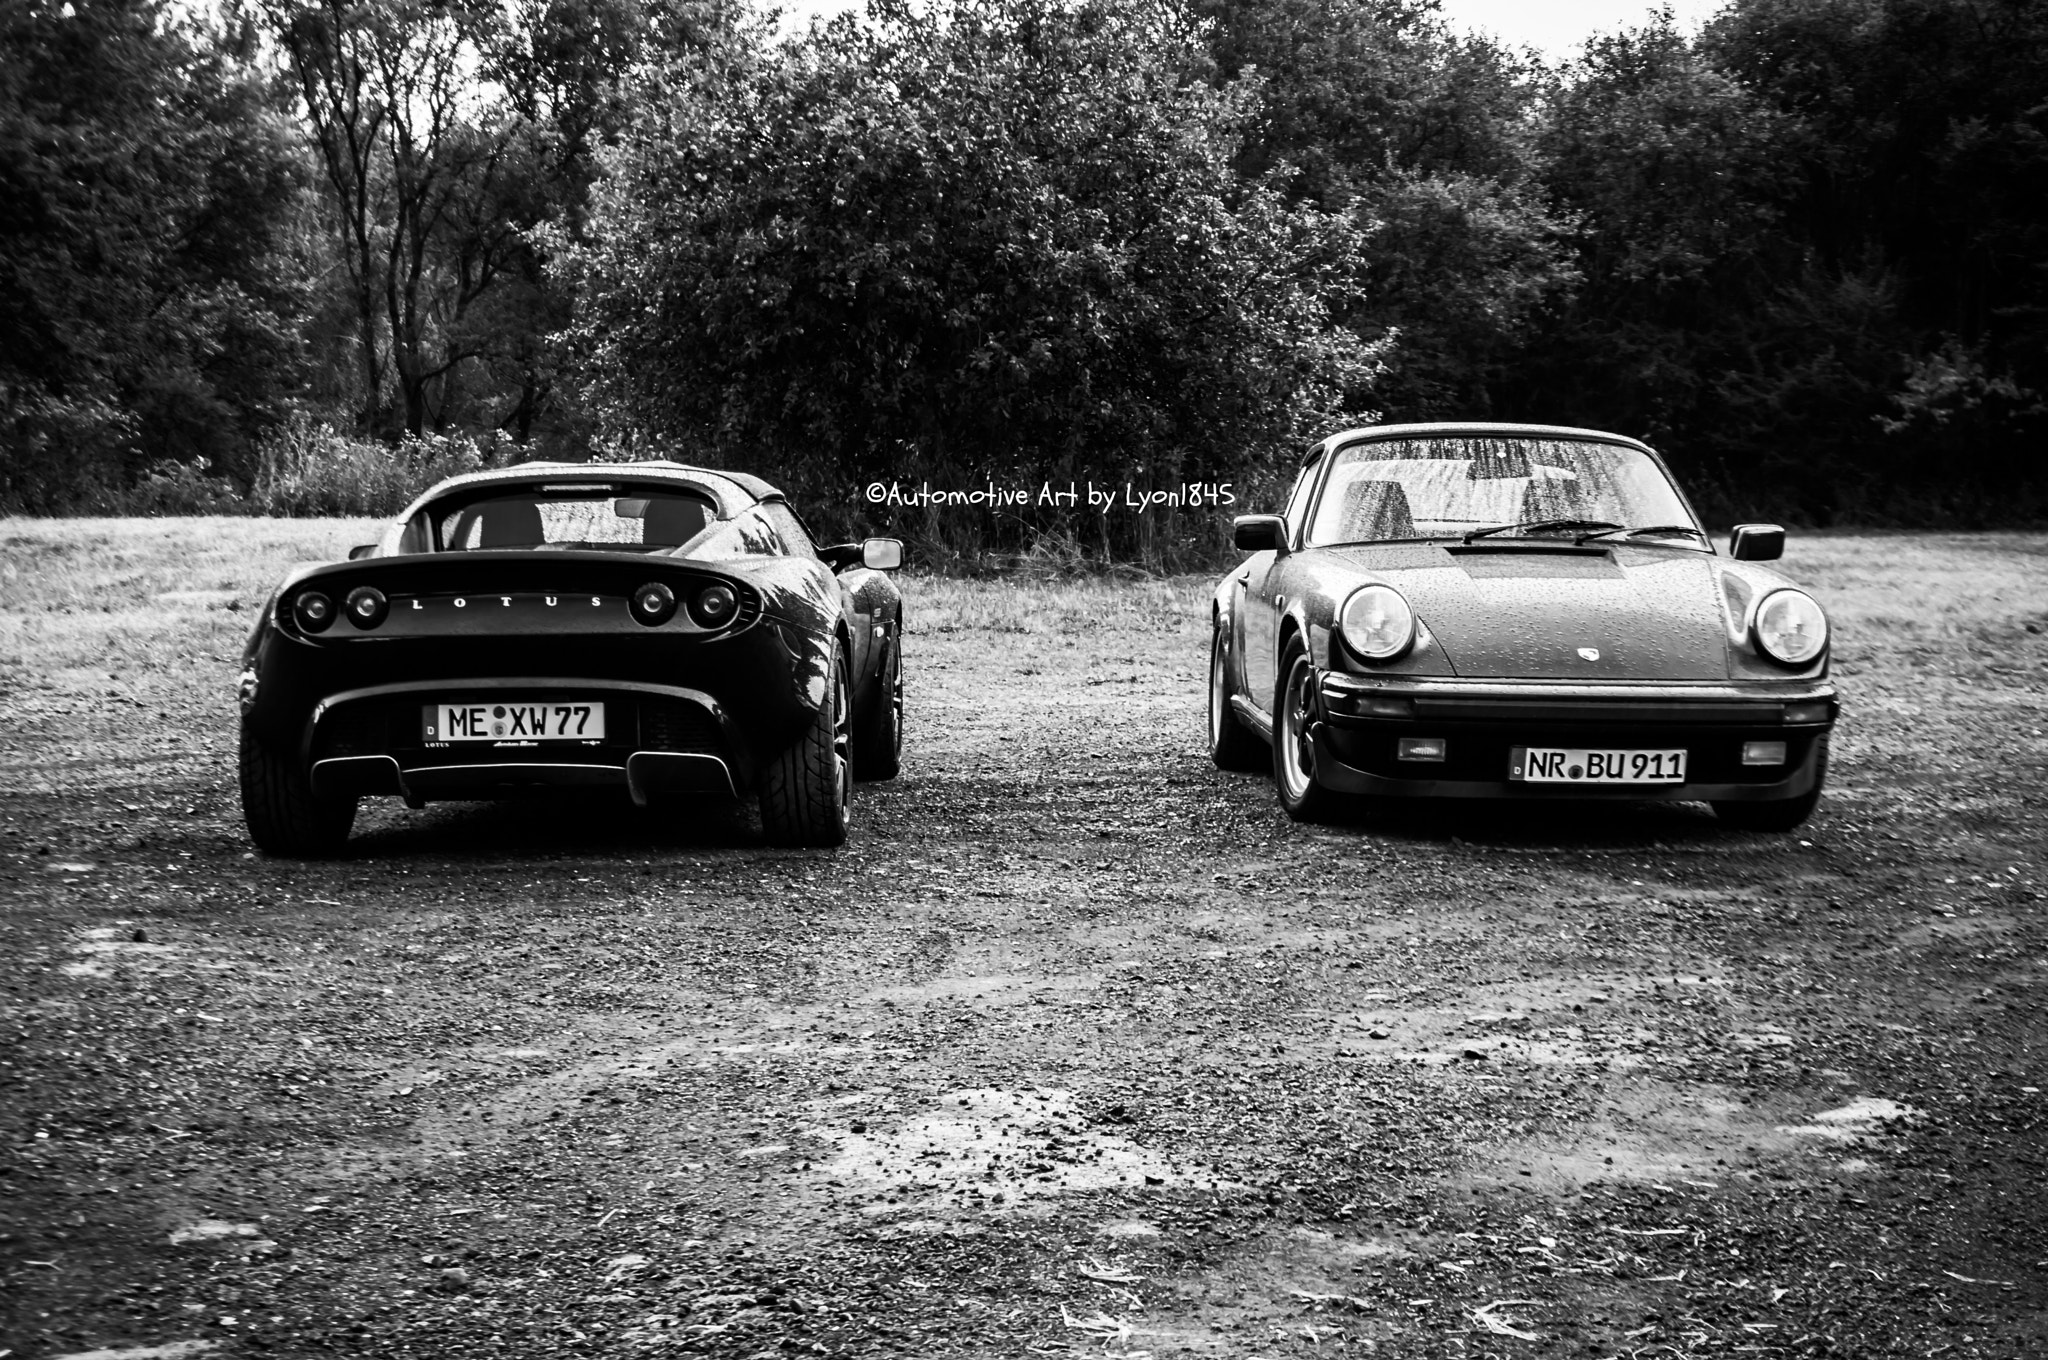 Photograph Lotus vs Porsche by lyon1845 on 500px